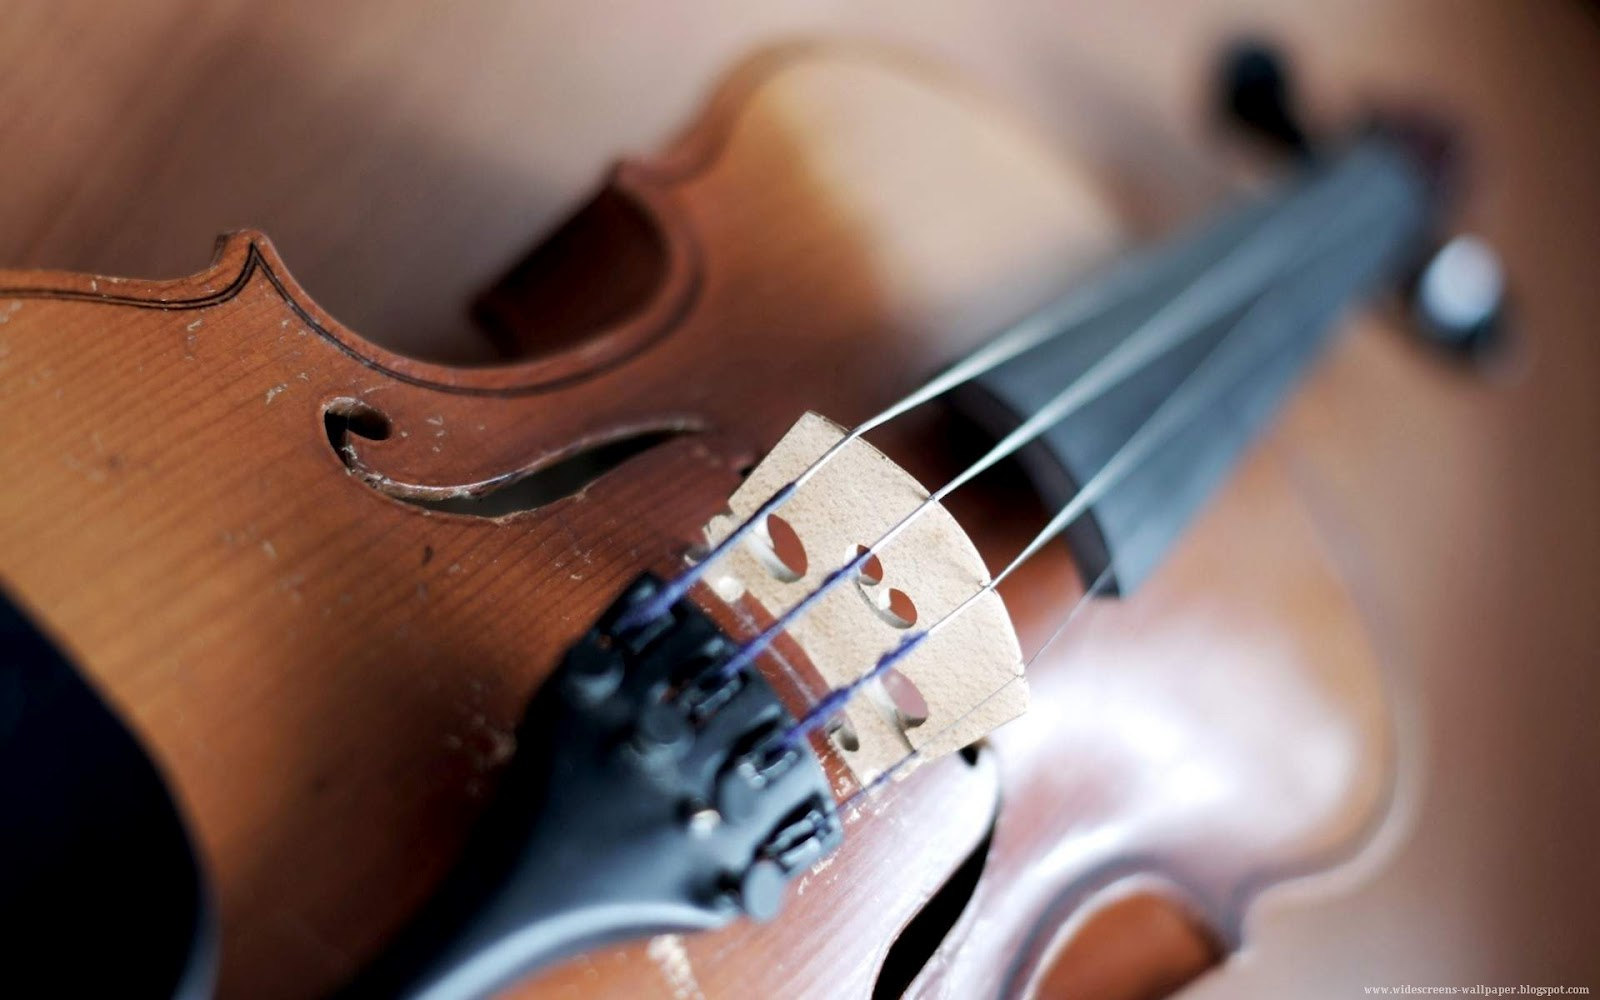 New violin gallery collection - Music Violins Wallpaper